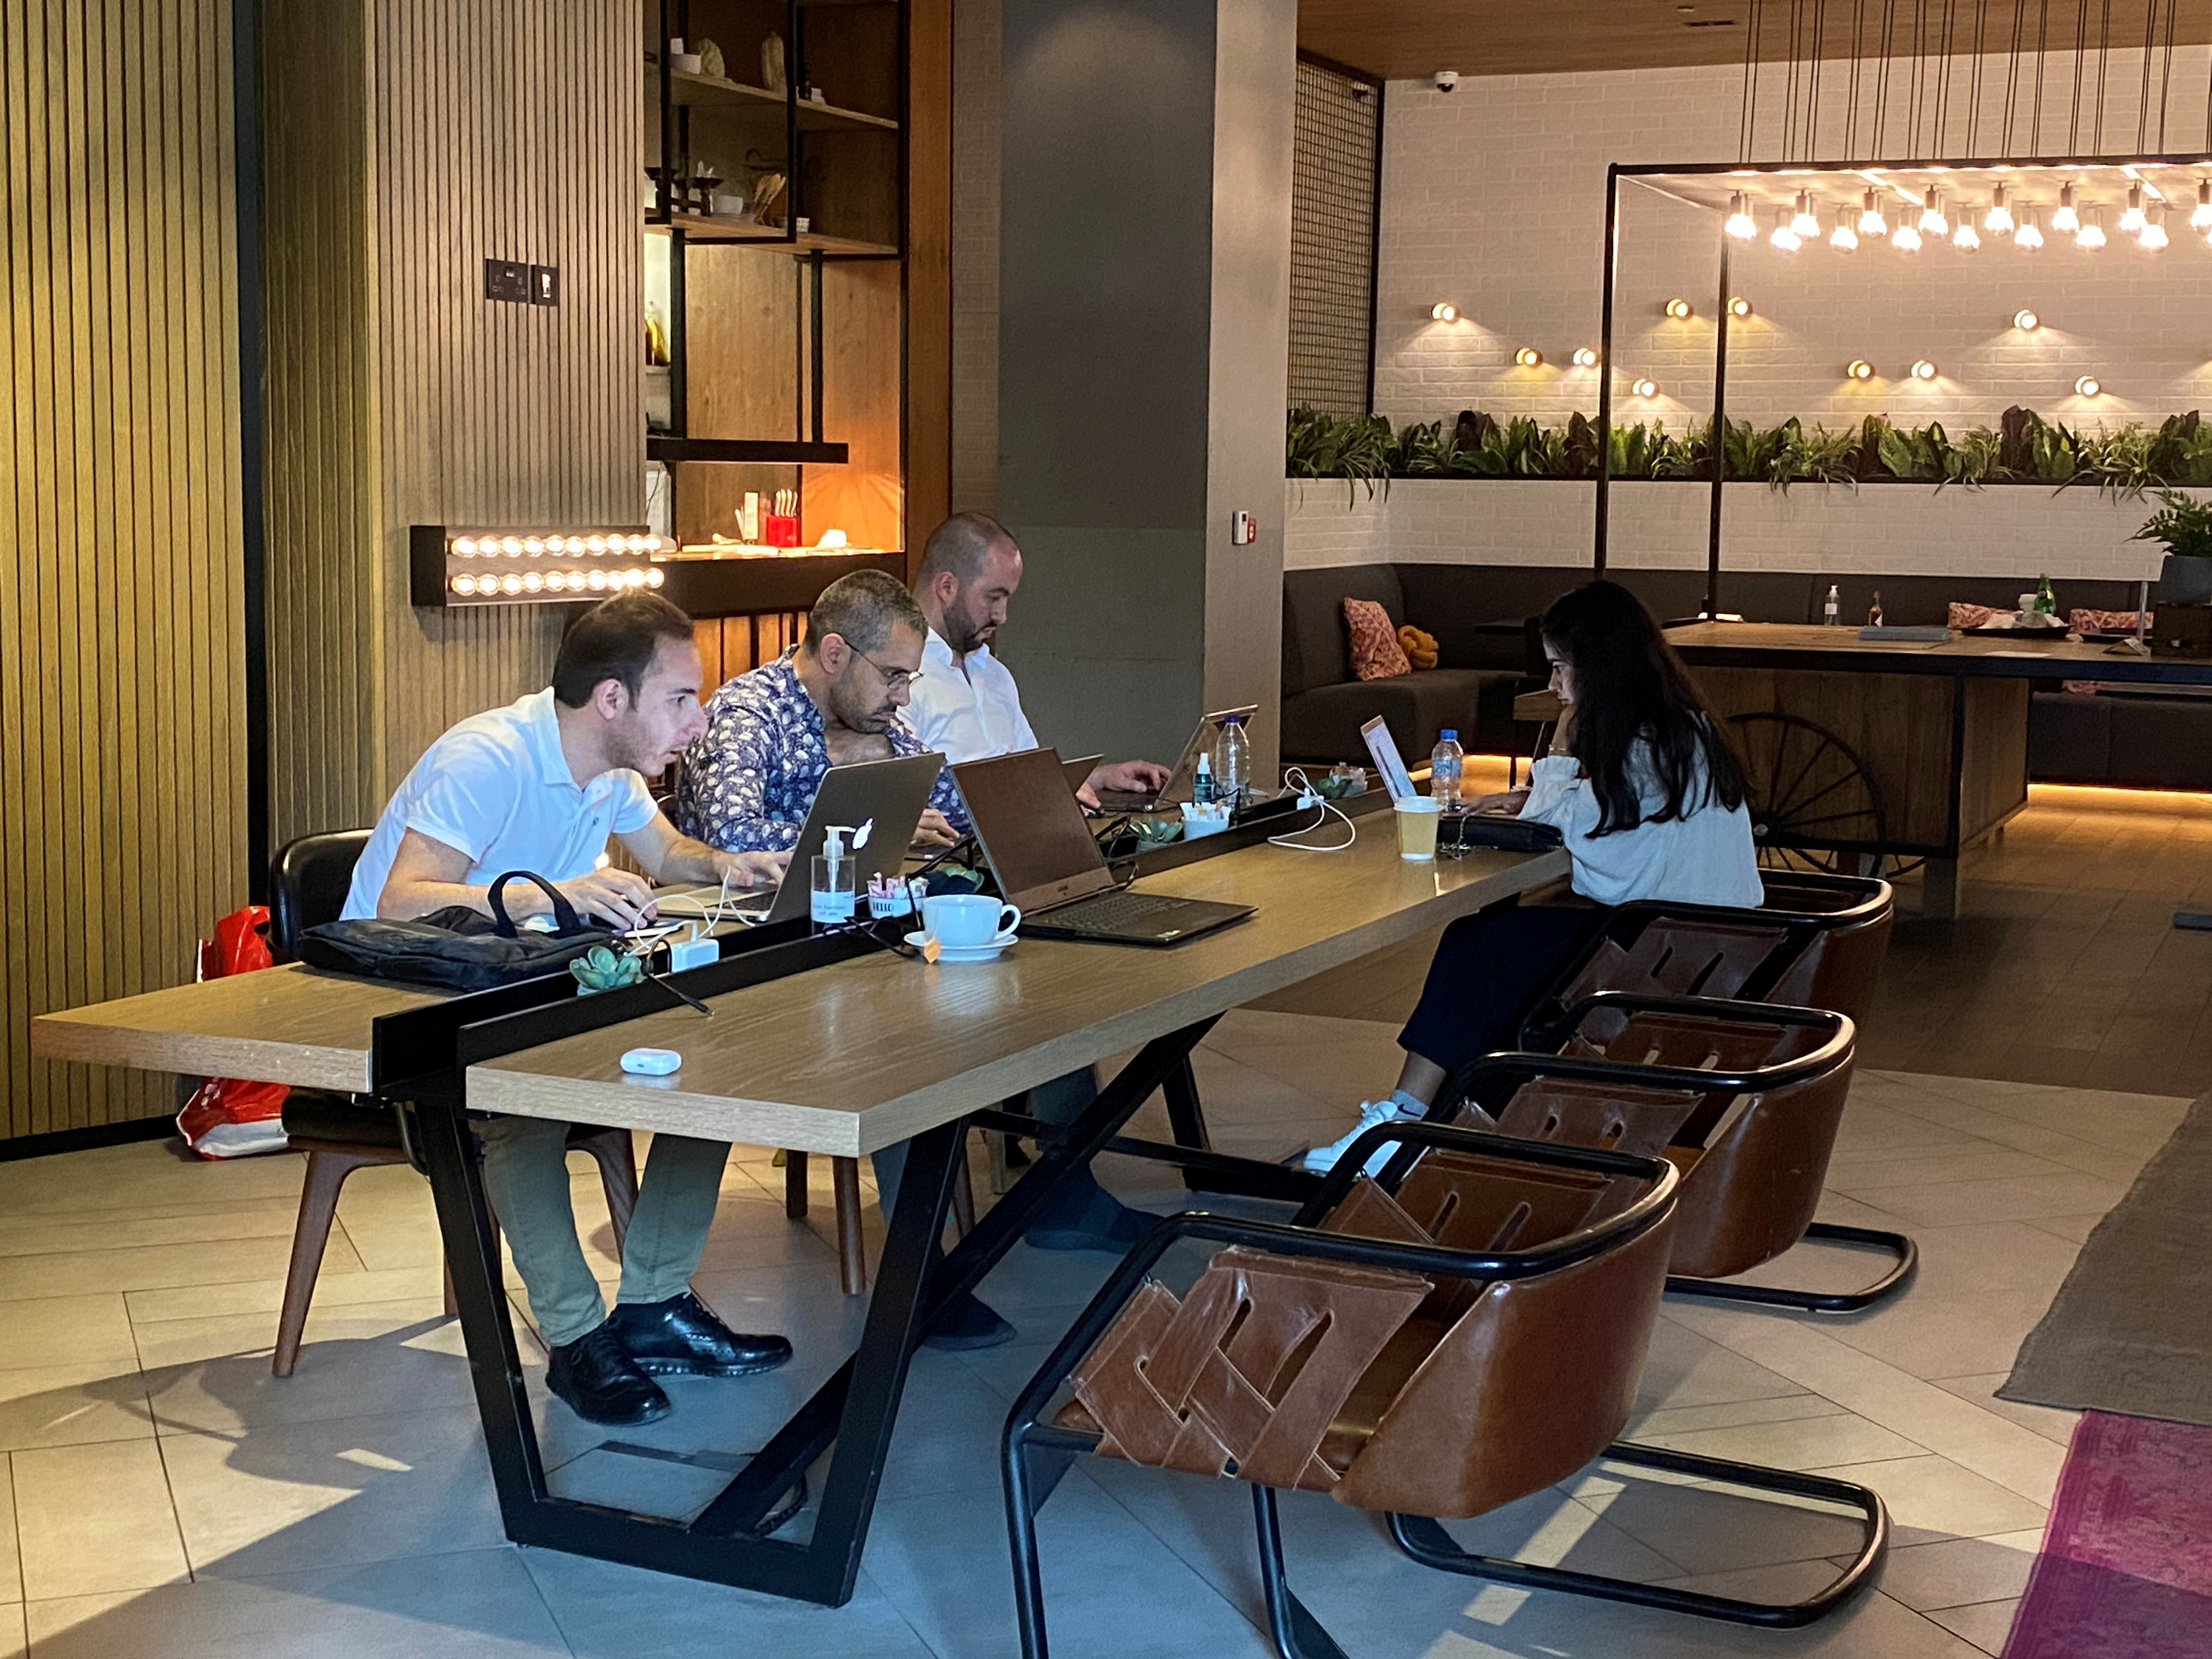 People work as they sit in a cafe at Zabeel House - The Greens, amid the spread of the coronavirus disease (COVID-19) in Dubai, United Arab Emirates February 1, 2021. Picture taken February 1, 2021. REUTERS/Rula Rouhana - RC2UKL9PEICV